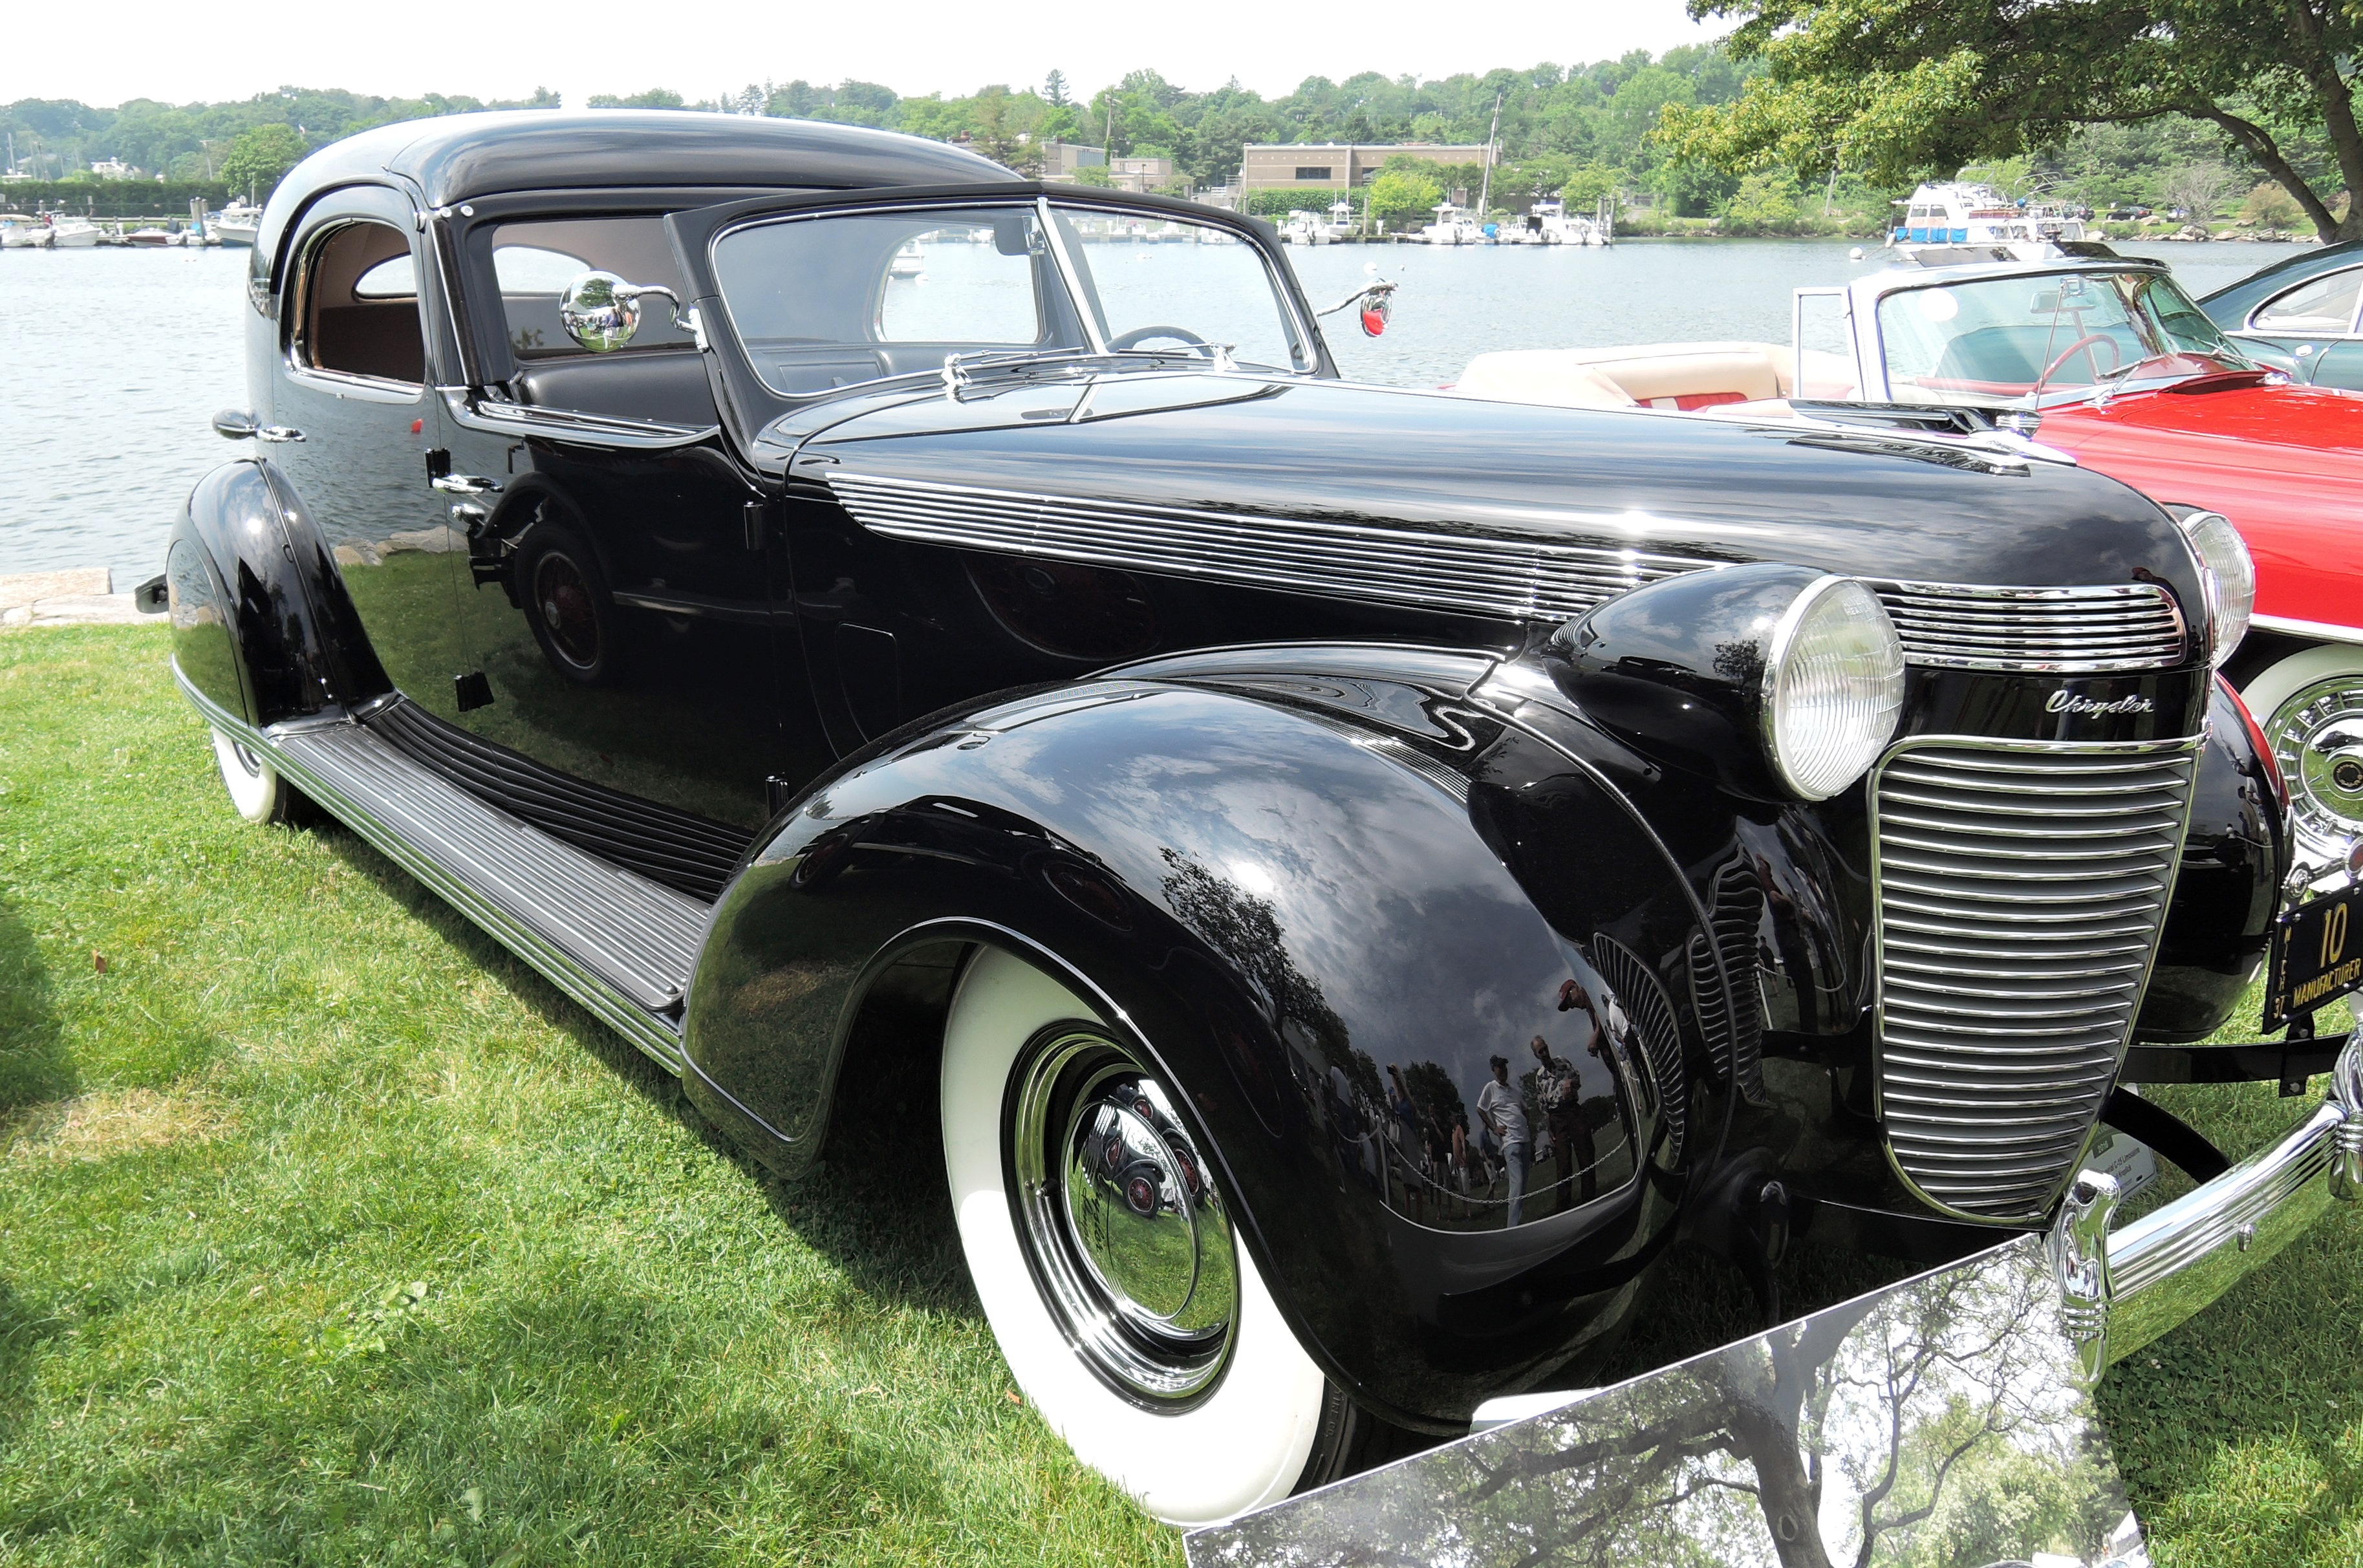 black 1937 Chrysler Imperial C-15 Limosine - greenwich concours